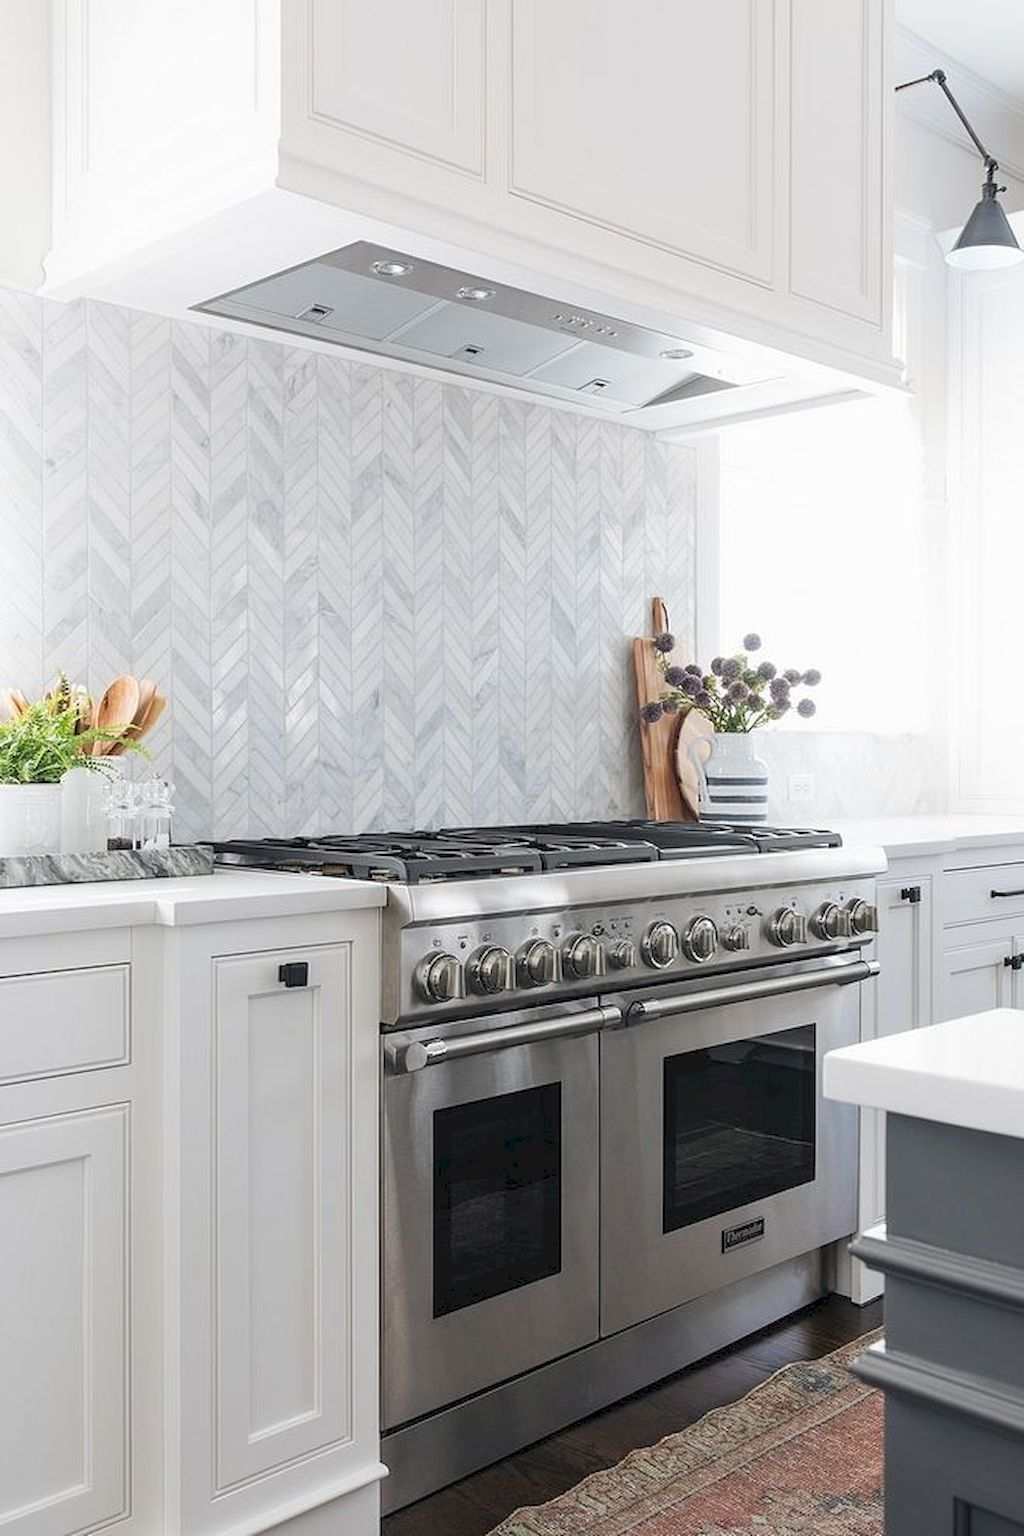 Best Inspirations Herringbone Kitchen Backsplash Kitchen Design